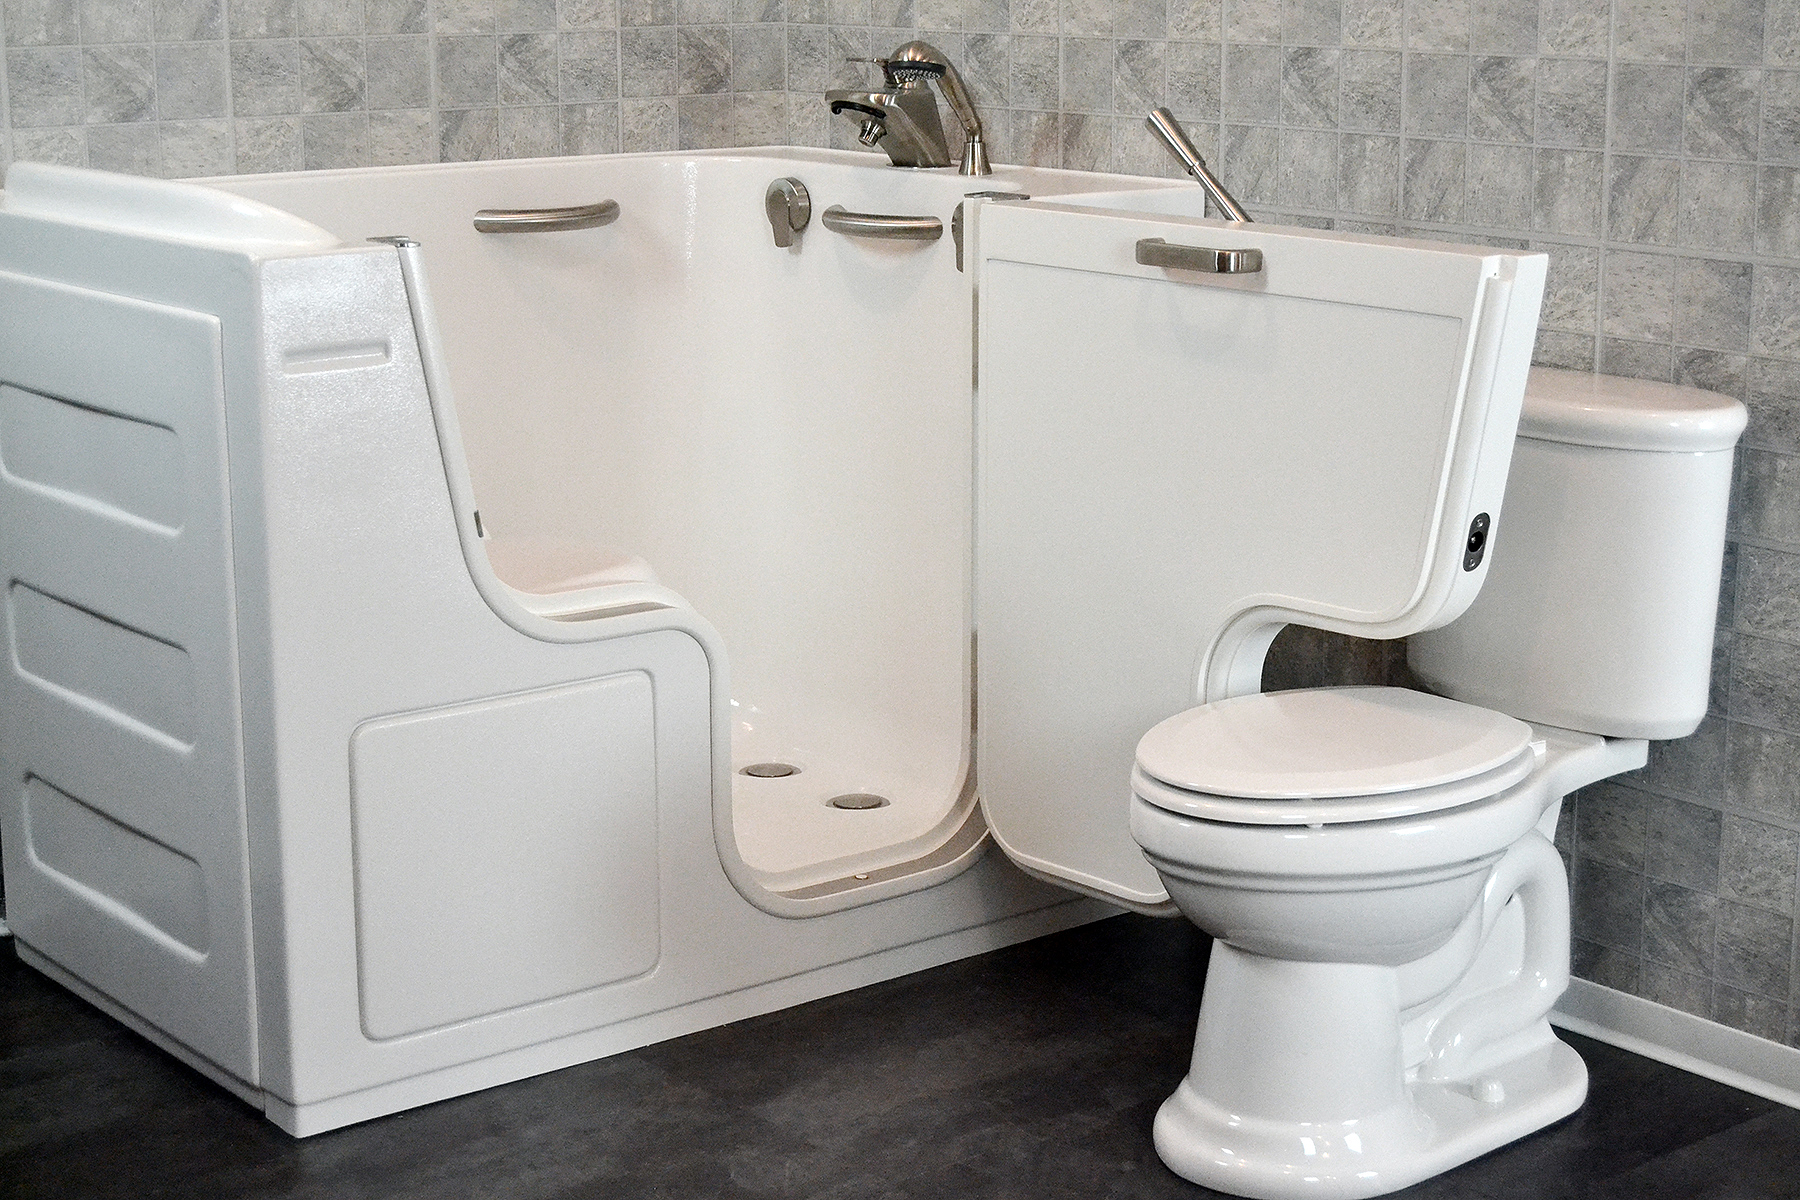 Walk In Tub Houston | Bathtub Installation Houston